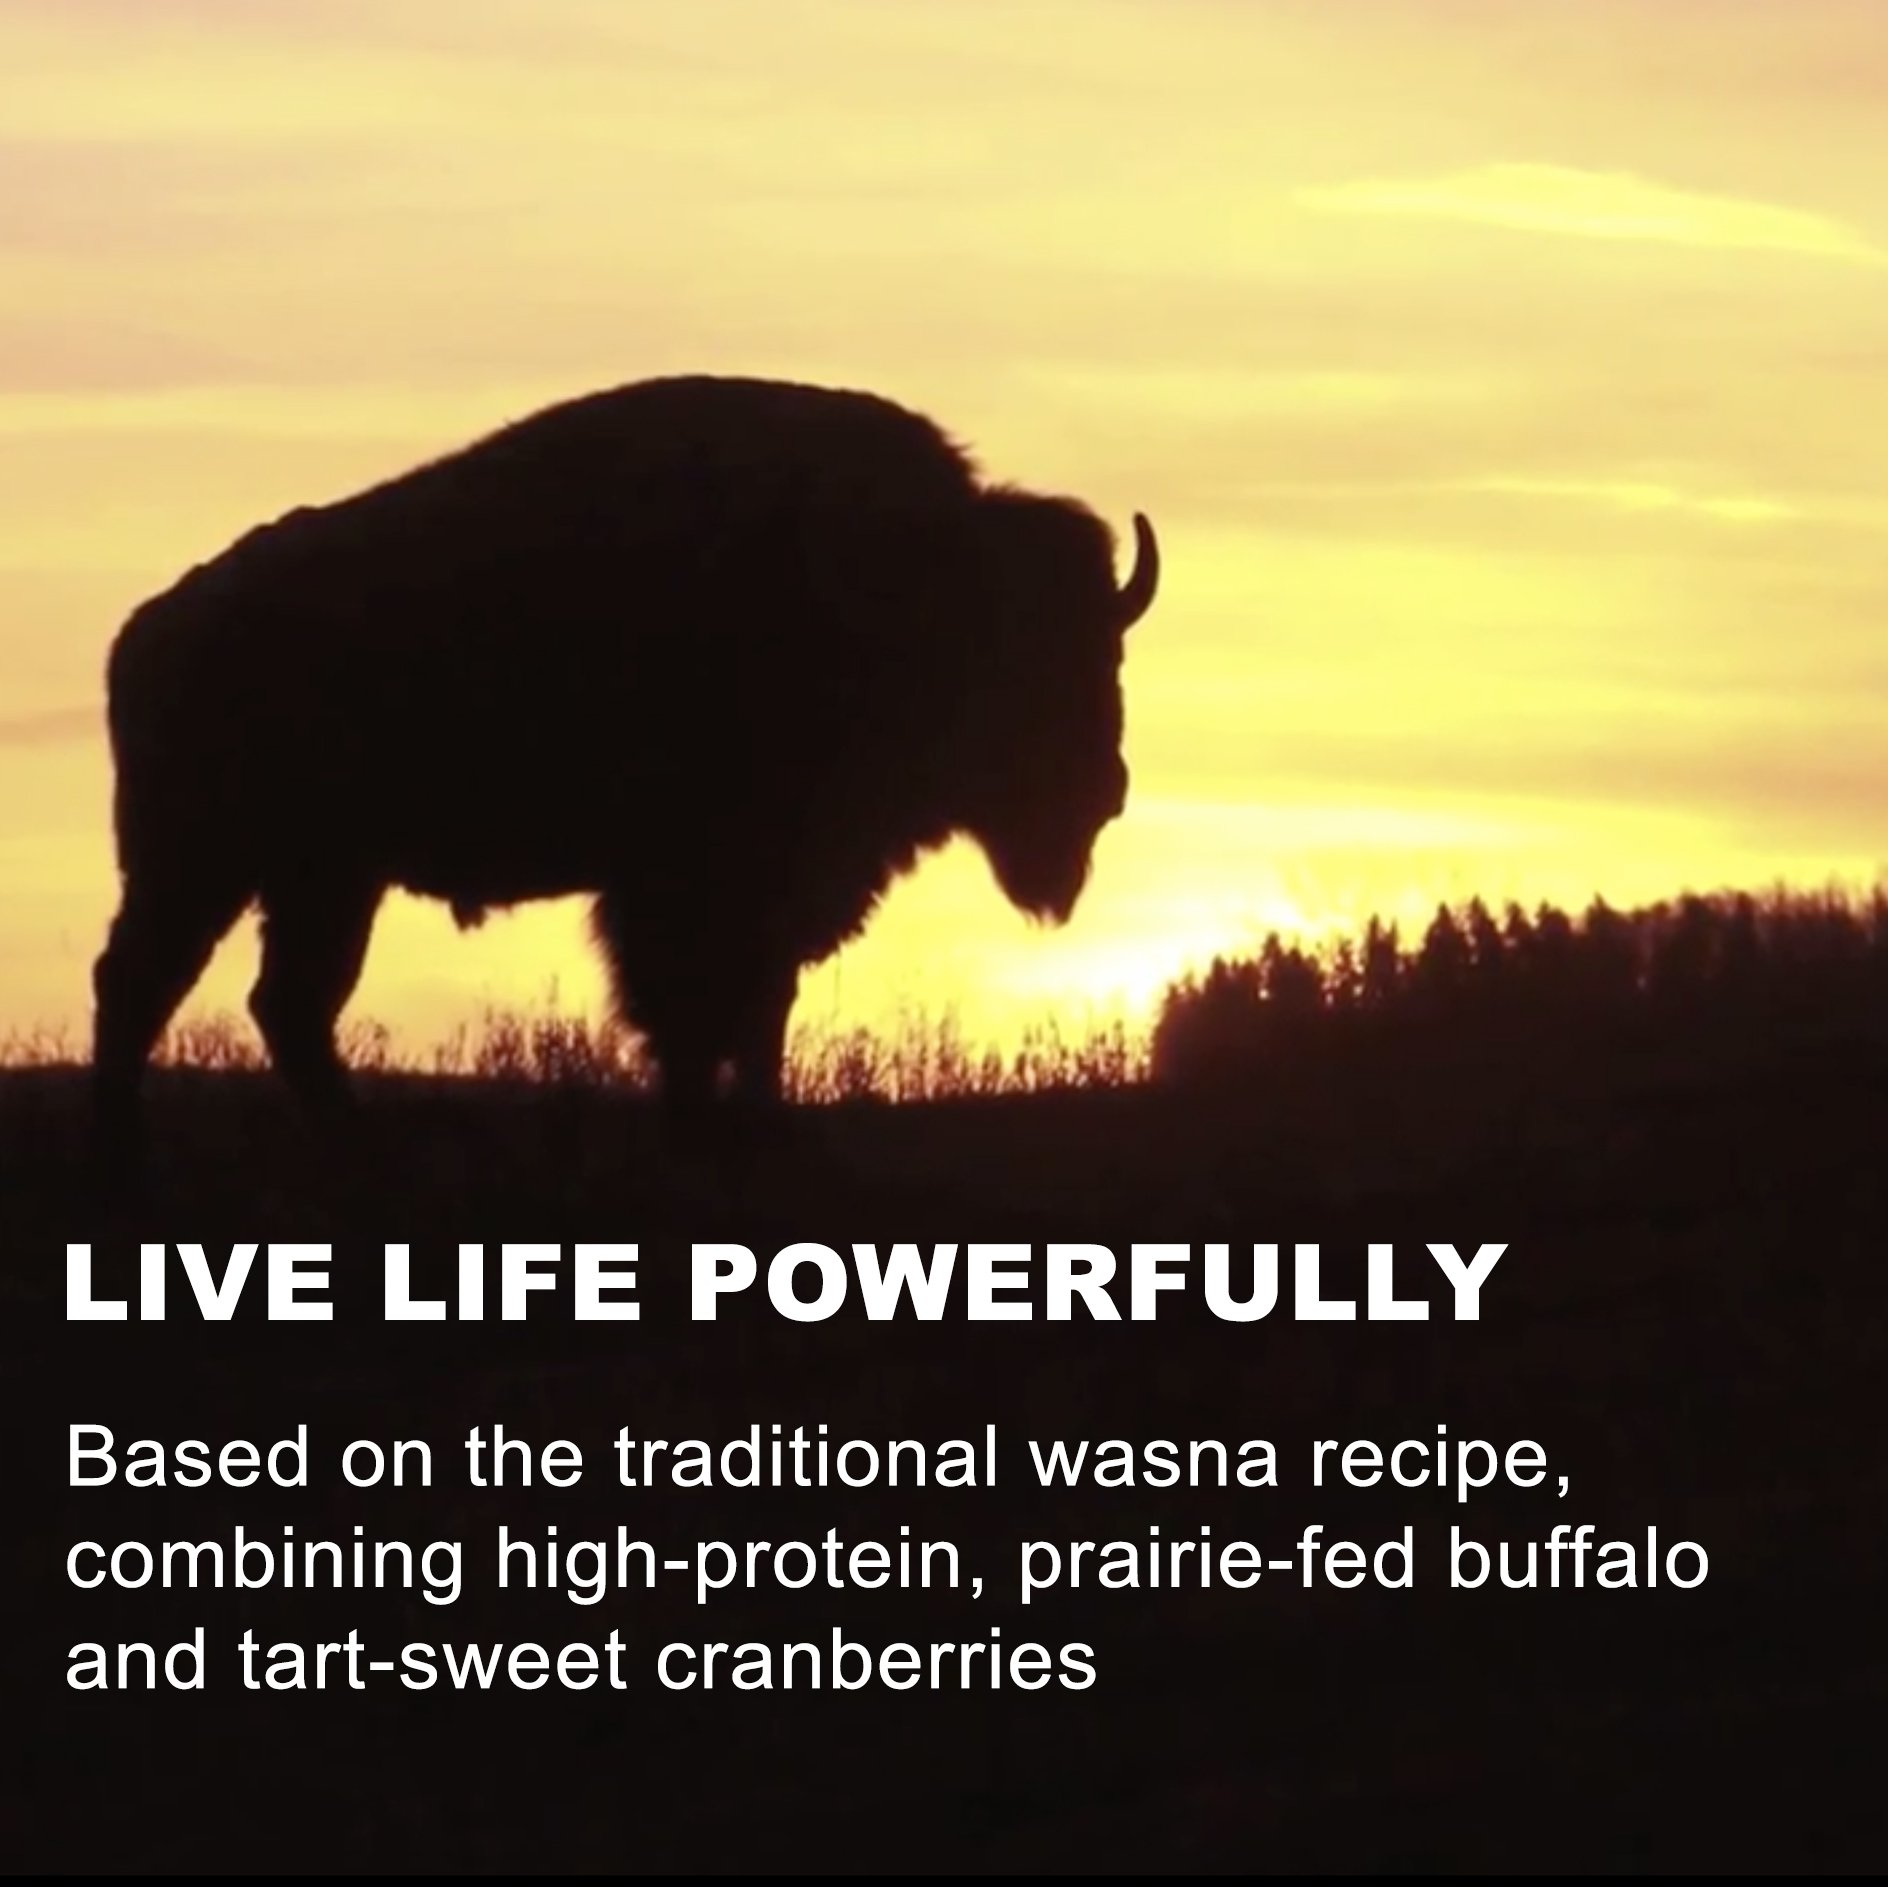 Bison Pemmican Meat Bar with Buffalo and Cranberries by Tanka, Gluten Free, Beef Jerky Alternative, Slow Smoked Original, 2 Ounce Bar, Pack of 12 by Tanka (Image #10)